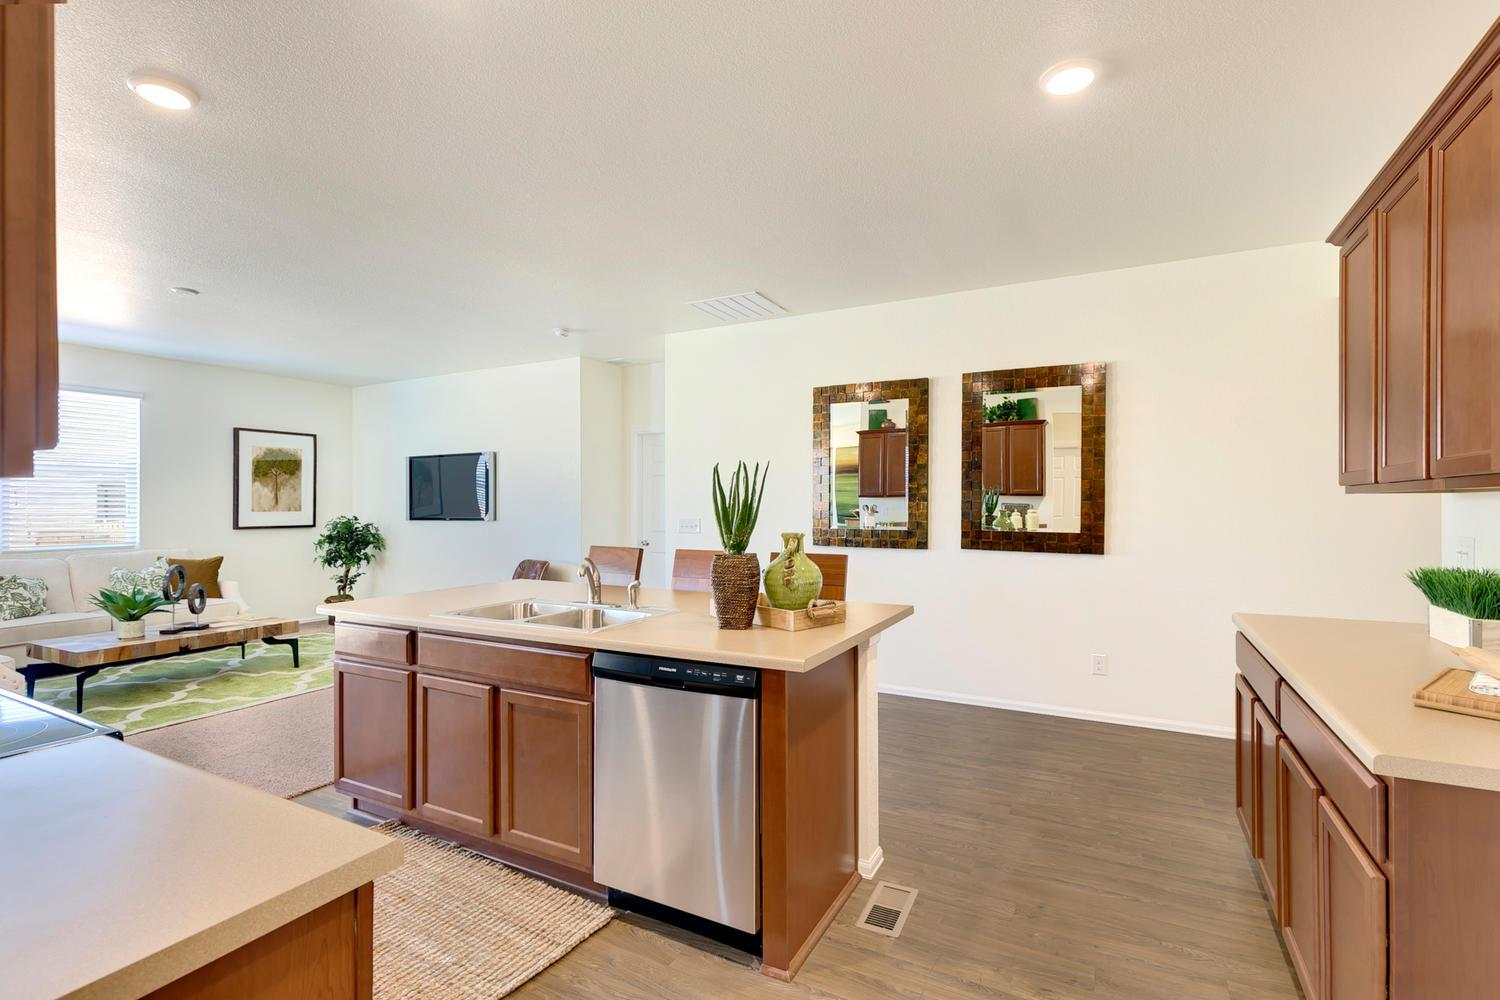 Kitchen featured in the ORCHARD By D.R. Horton in Fort Collins-Loveland, CO